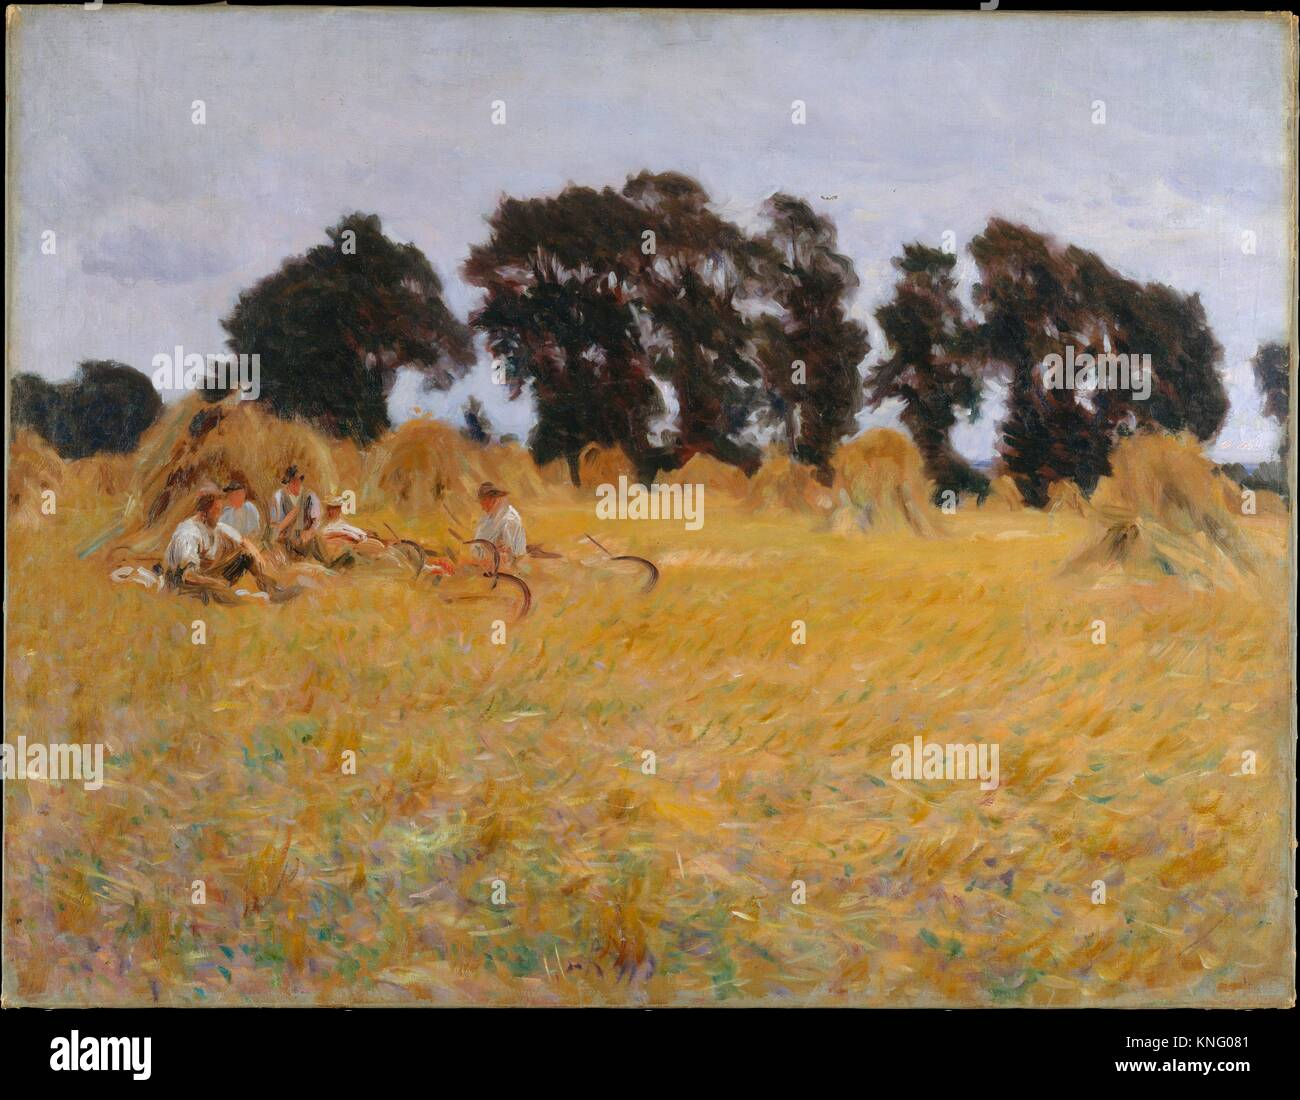 Reapers Resting in a Wheat Field. Artist: John Singer Sargent (American, Florence 1856-1925 London); Date: 1885; - Stock Image